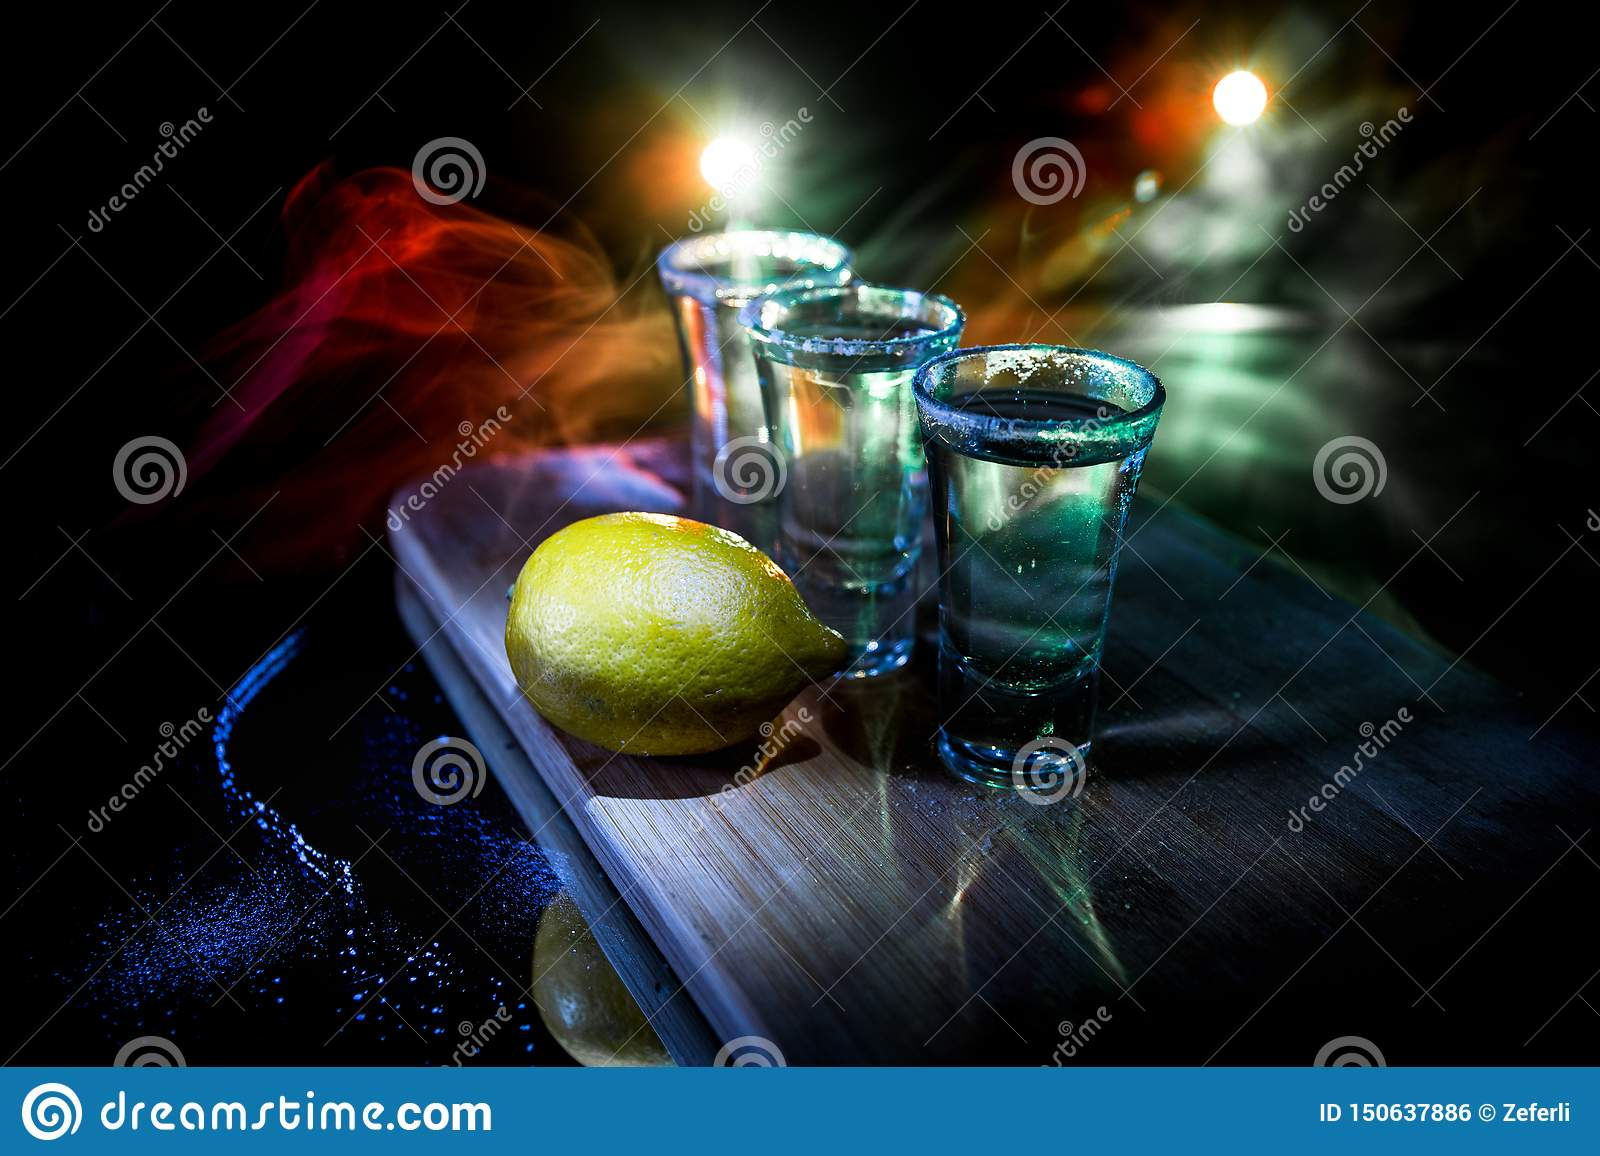 Club drink concept. Tasty alcohol drink cocktail tequila with lime and salt on vibrant dark background or glasses with tequila at